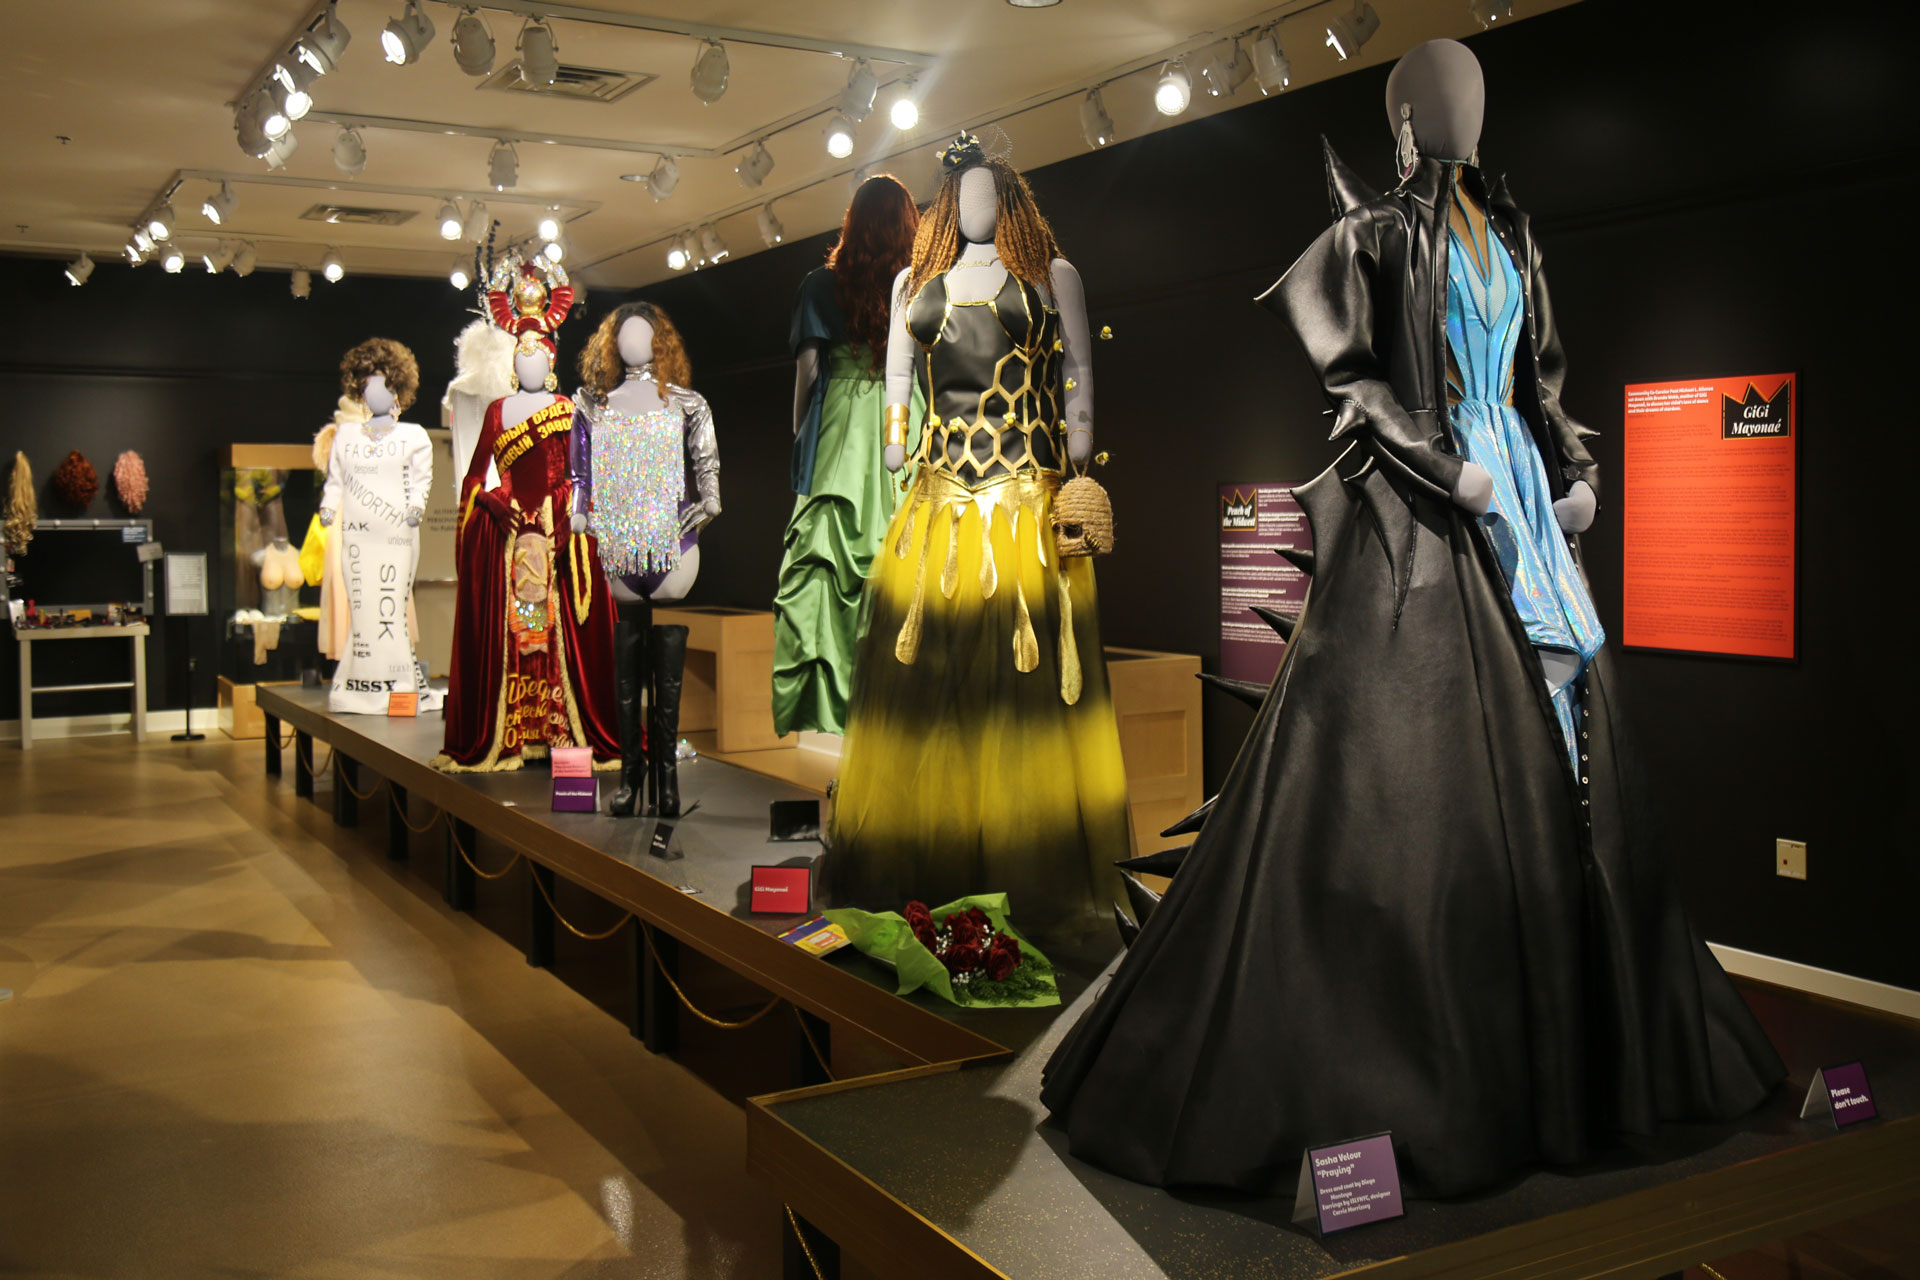 view of runway with several mannequins in elaborate costumes